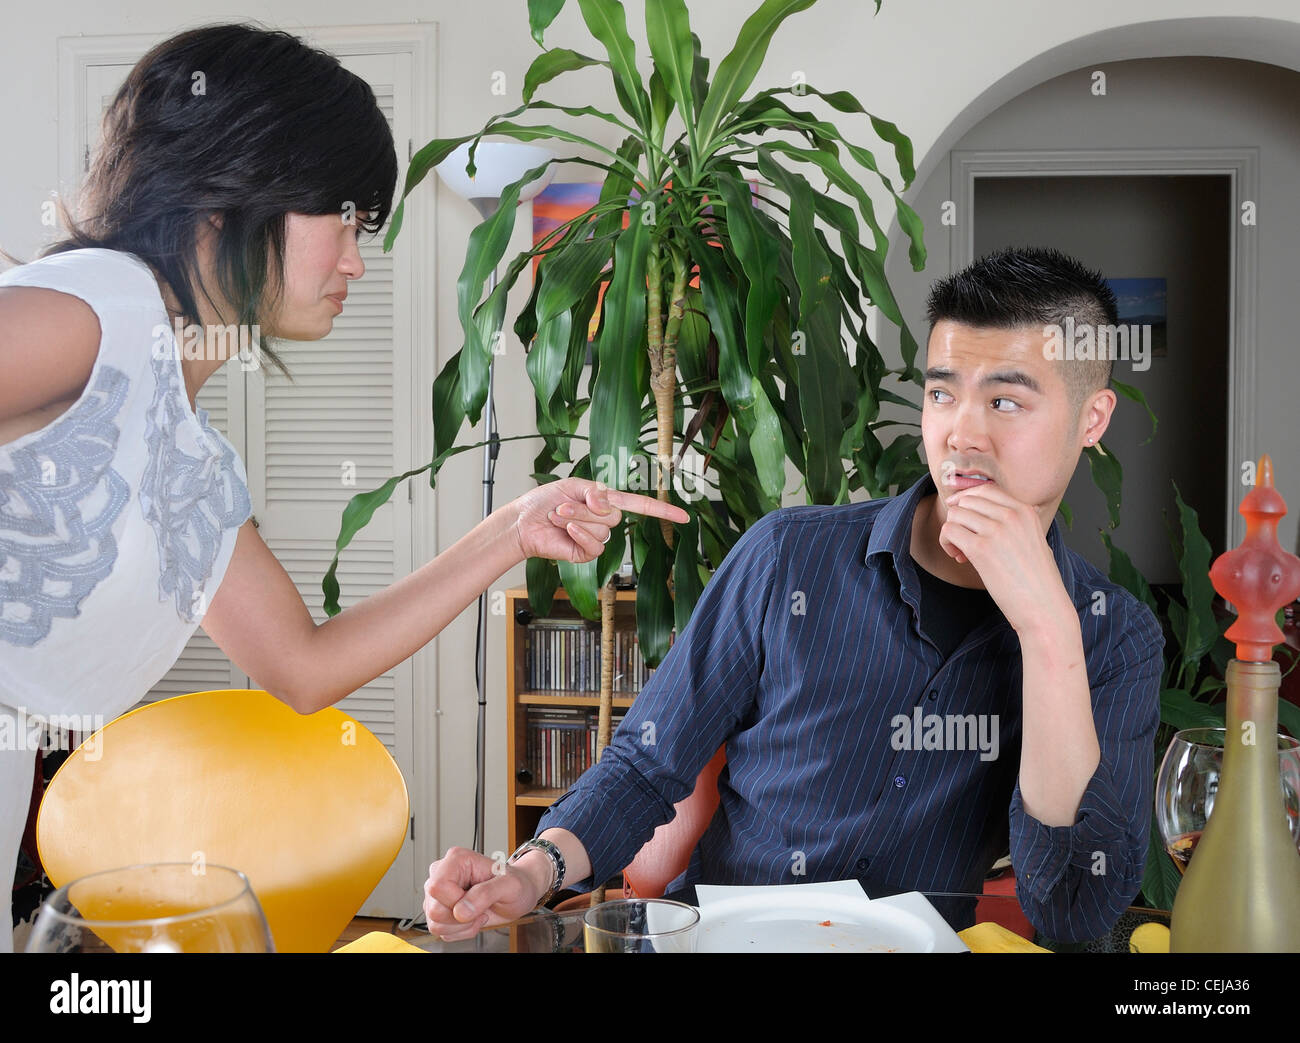 A couple in a conflict situation - Stock Image